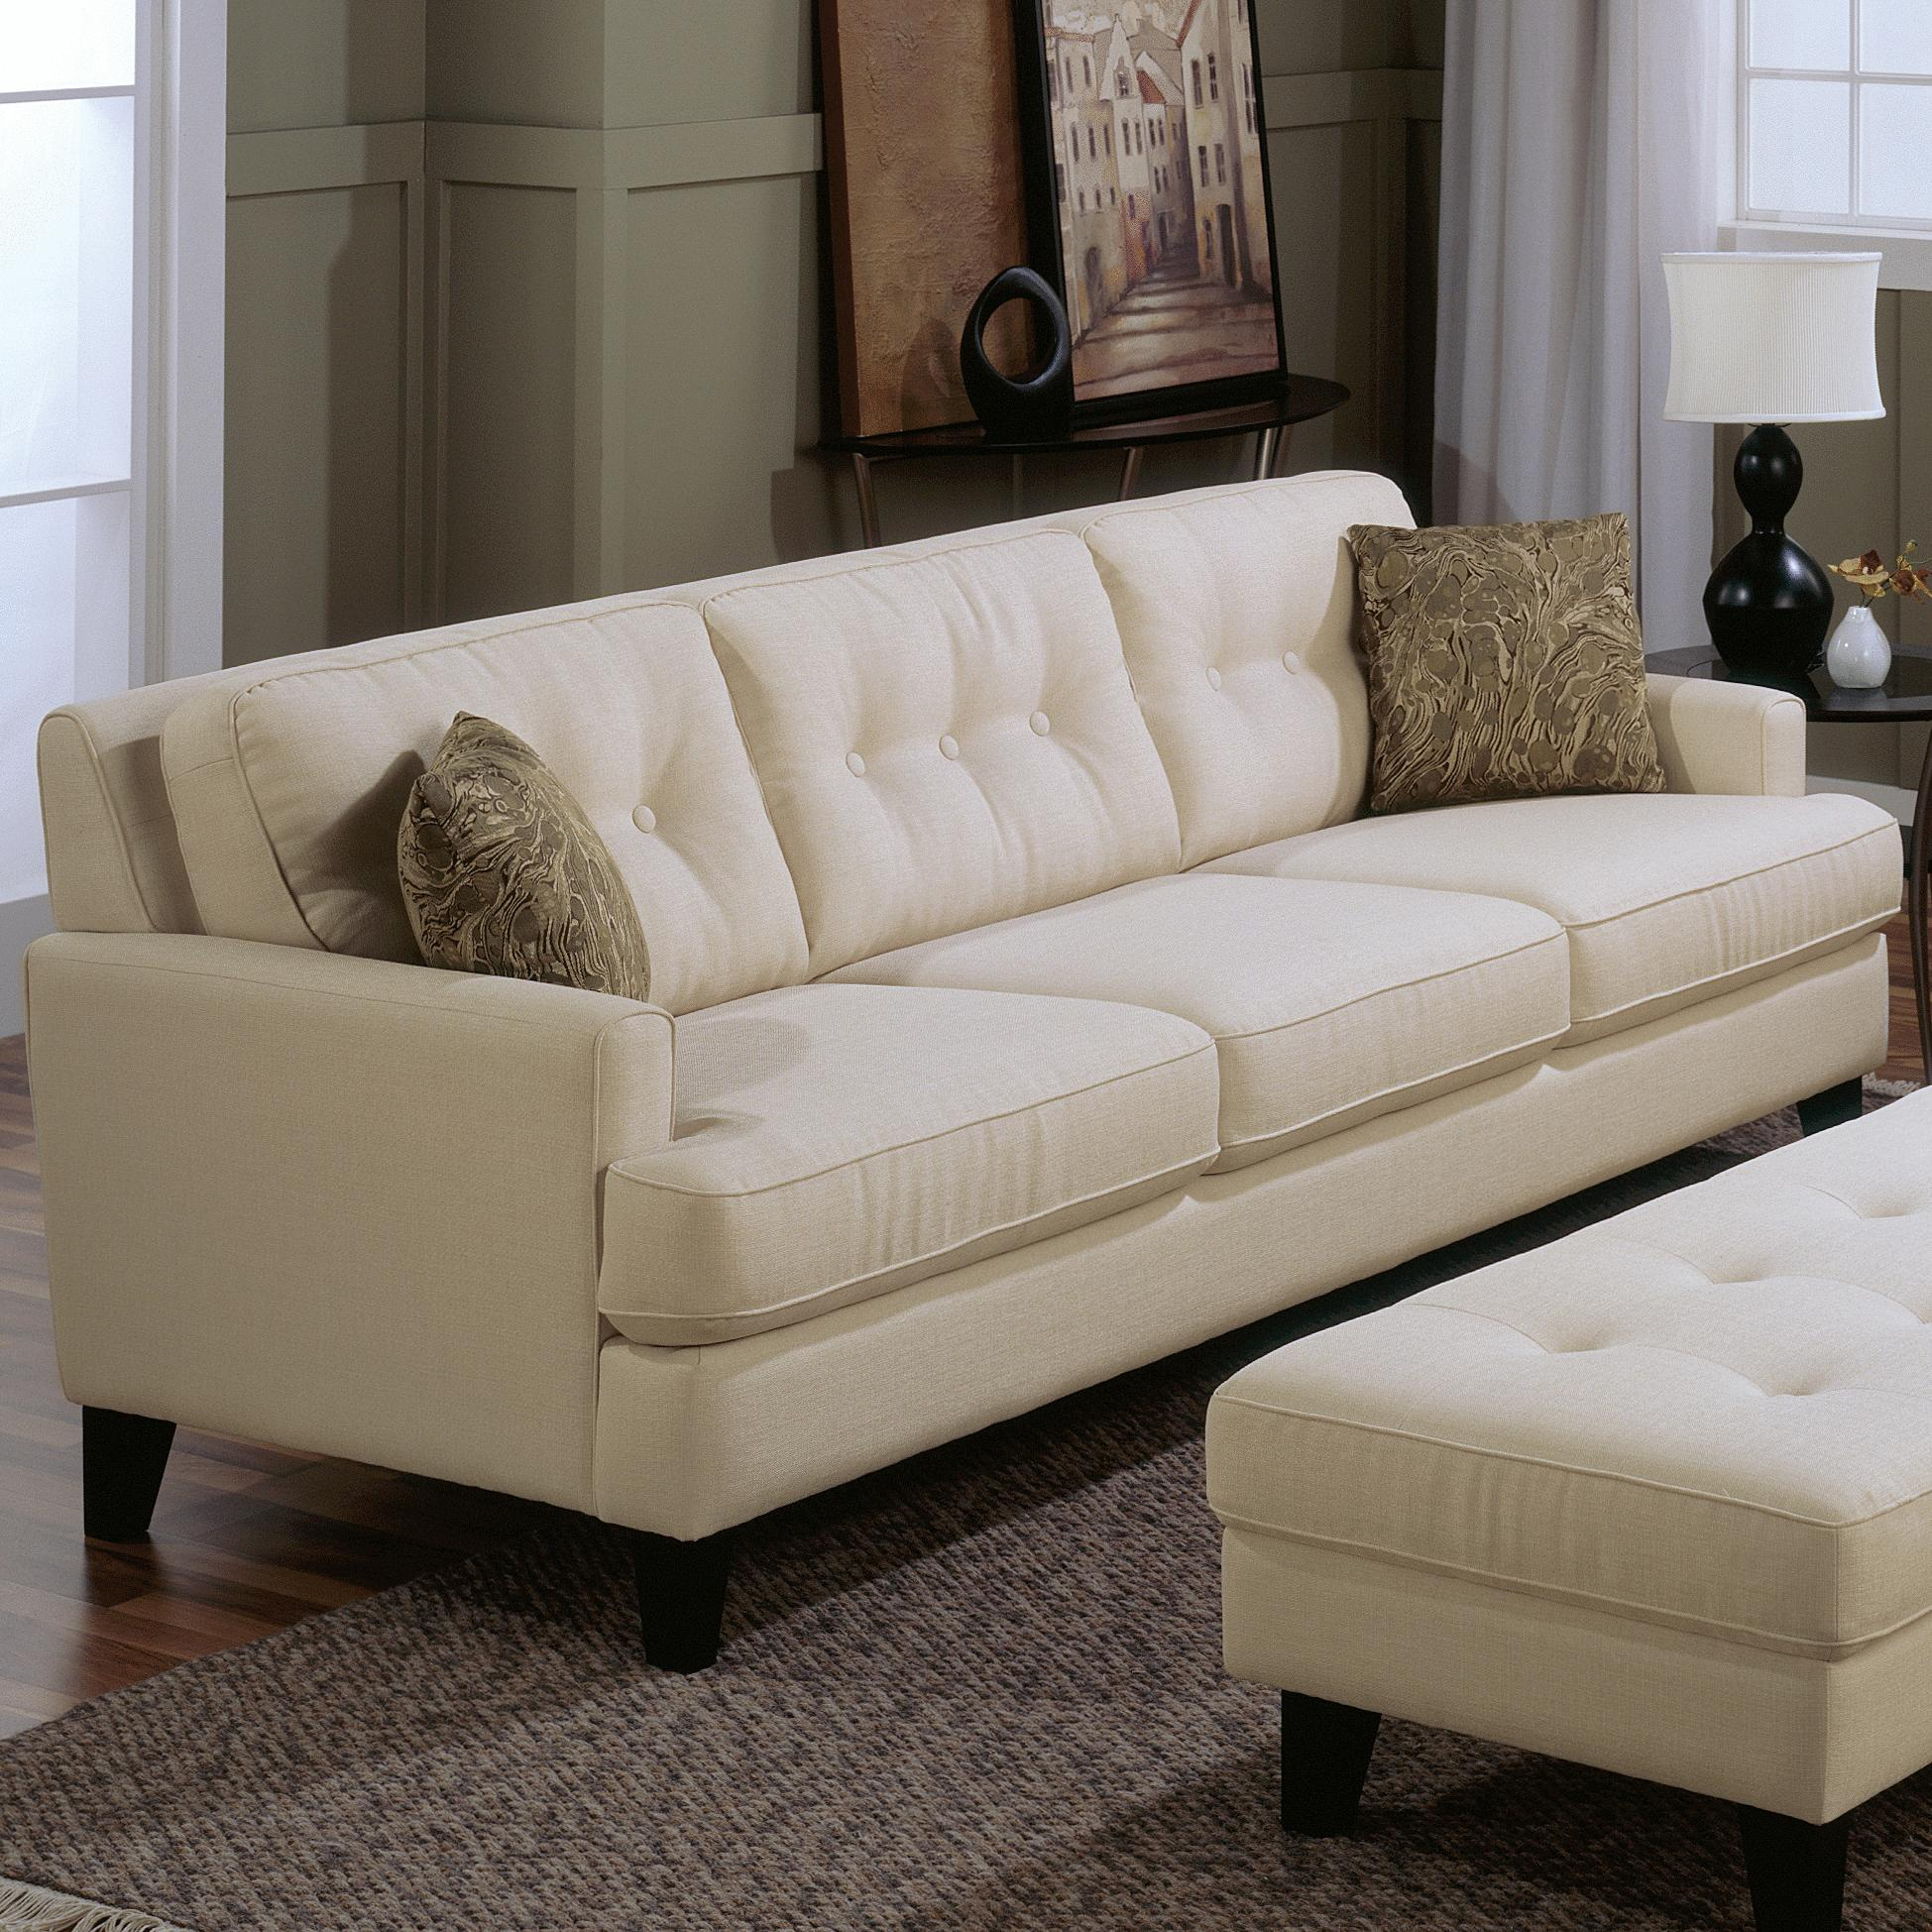 Palliser Barbara Transitional Stationary Sofa with Tapered Wood Legs  Belfort Furniture  Sofa